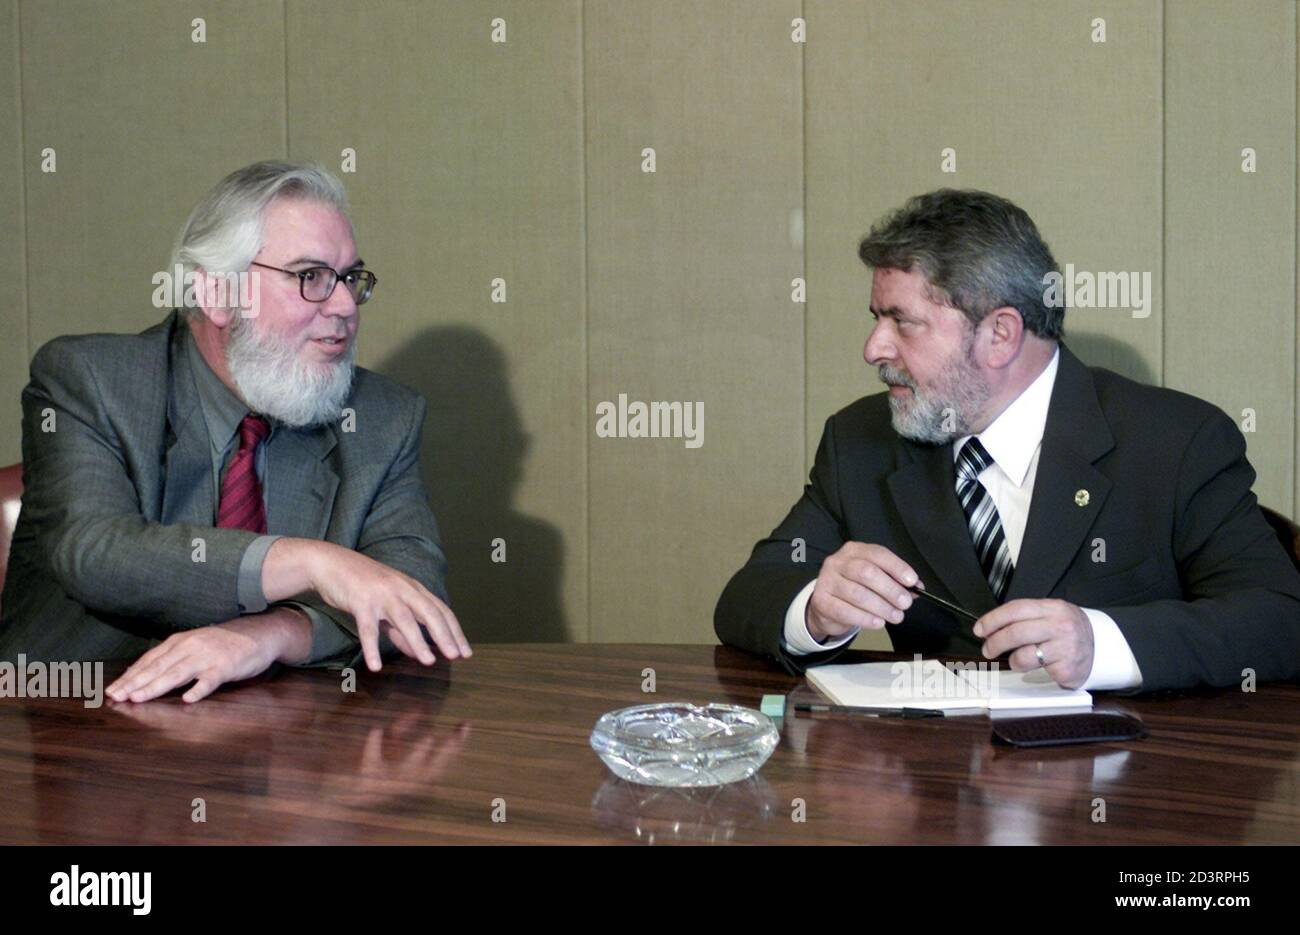 Brazilian President Luiz Inacio Lula da Silva (R) meets with Director General of the International Labor Organization (ILO) Juan Somavia in Brasilia, January 20, 2003. Somavia is in Brazil to further relations and understanding with the ILO and the new government on subjects such as social labor laws, child labor and aspects of slavery. Somavia is from Chile. REUTERS/Jamil Bittar  JB Stock Photo